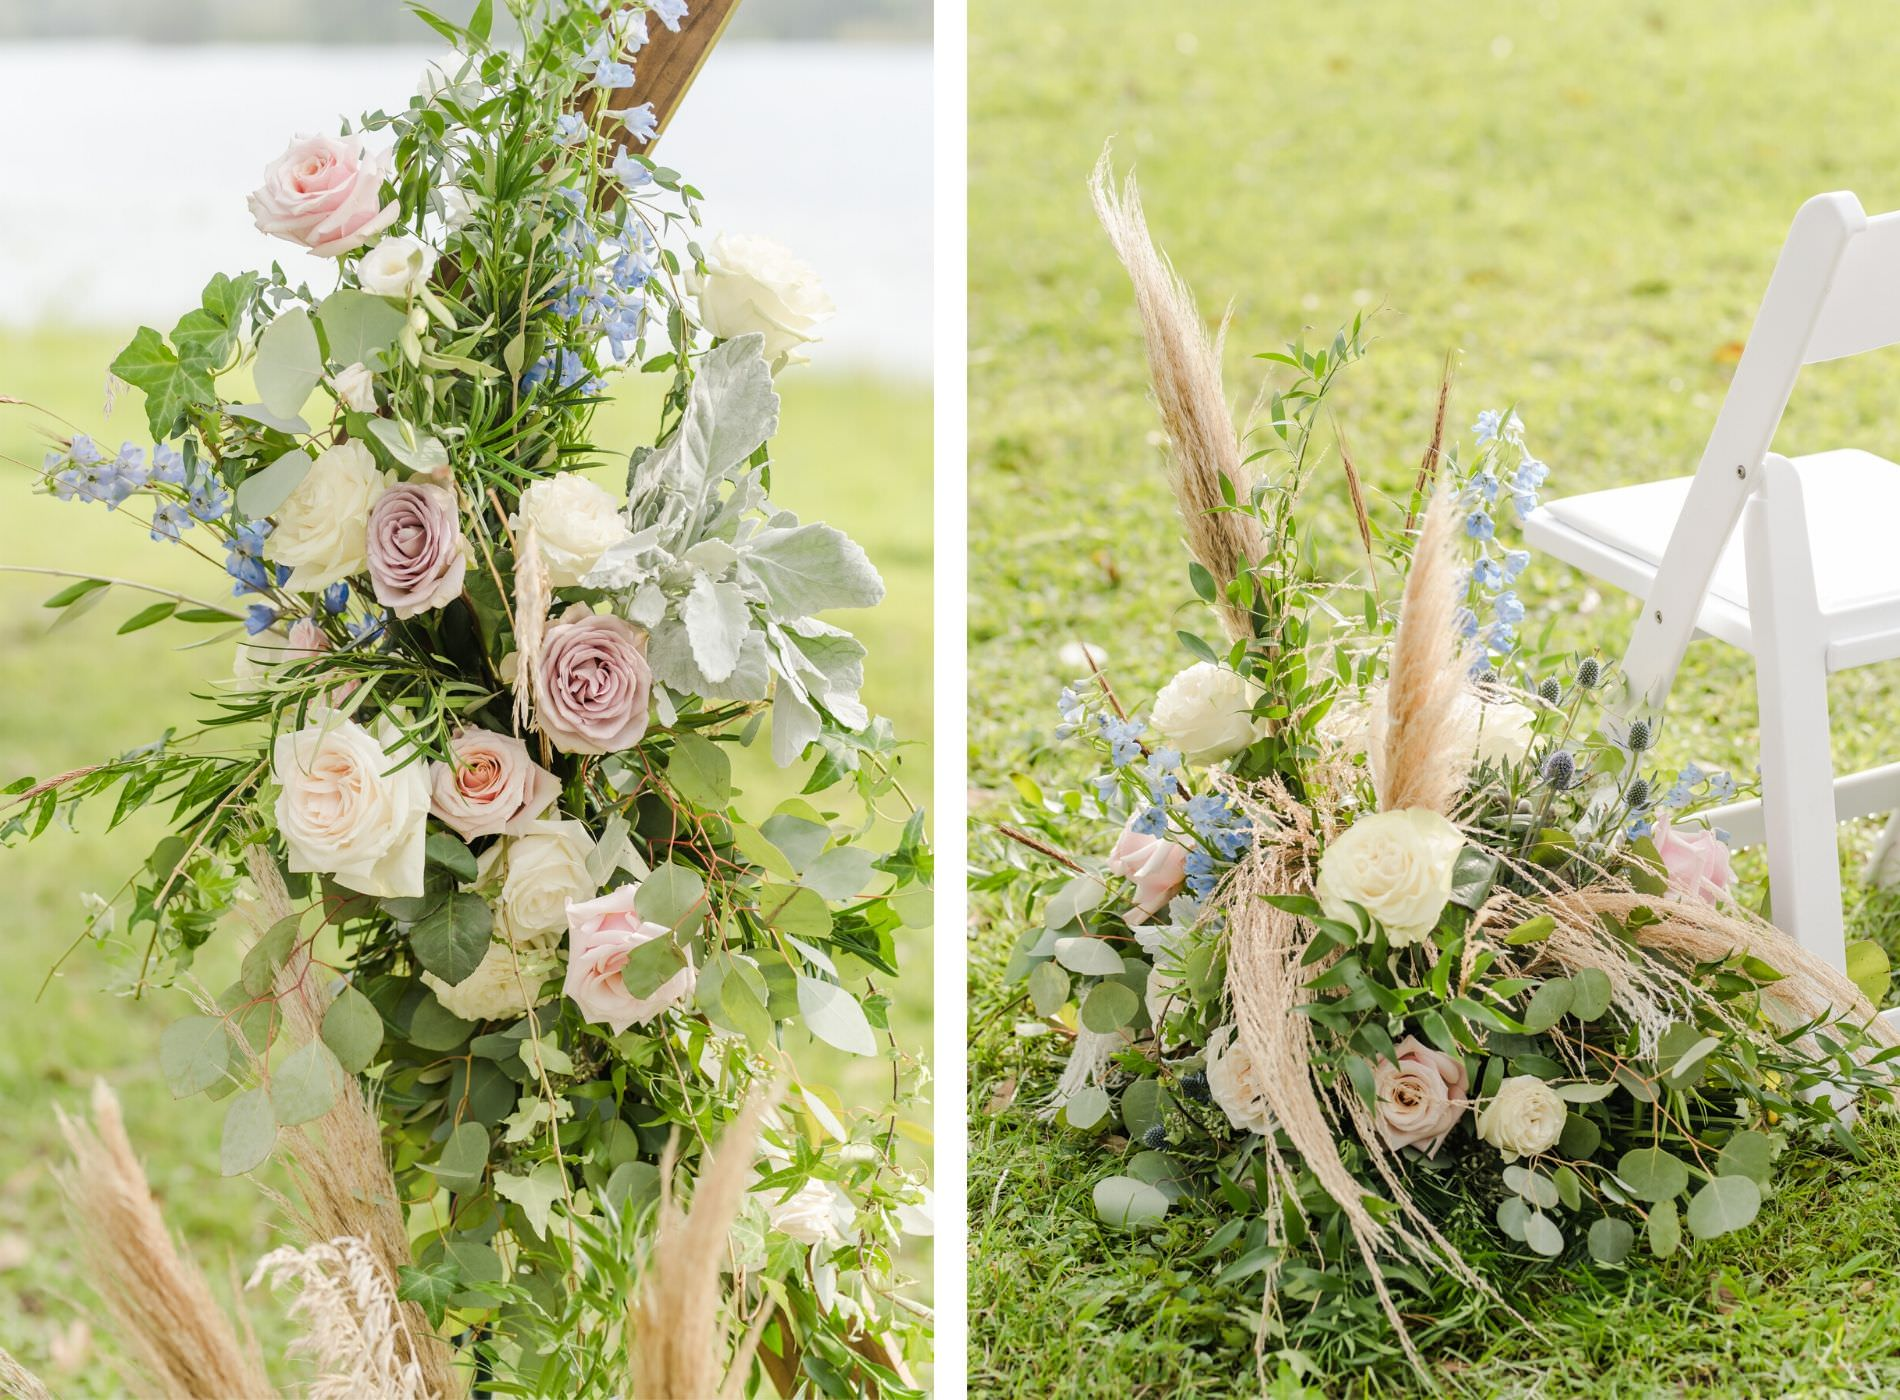 Whimsical Inspired Florida Wedding Ceremony Flowers and Decor, Dusty Rose Florals, Ivory Roses, Light Blue Flowers, Pompous Grass, with Eucalyptus Leaves Greenery